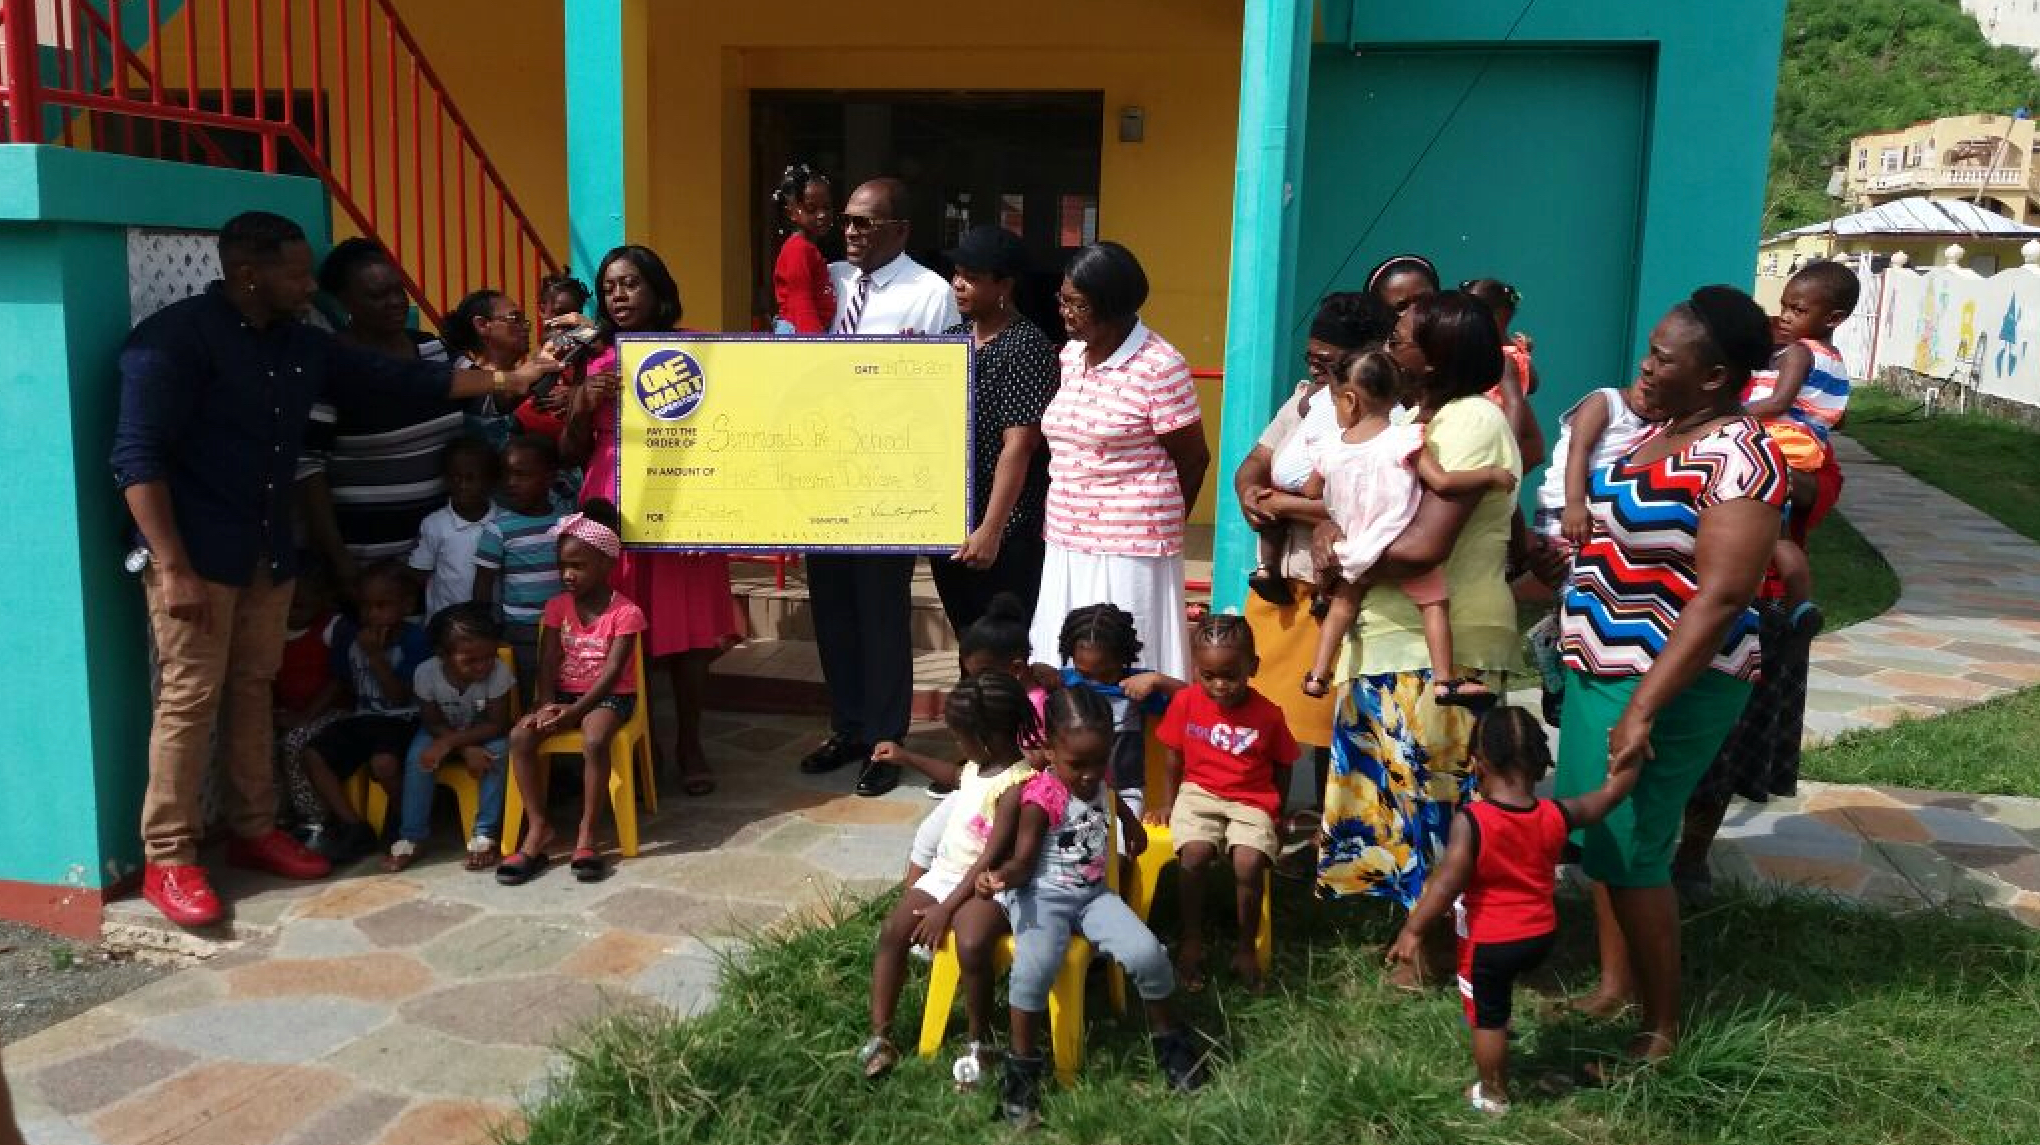 Supermarket donates another $5K to pre-school